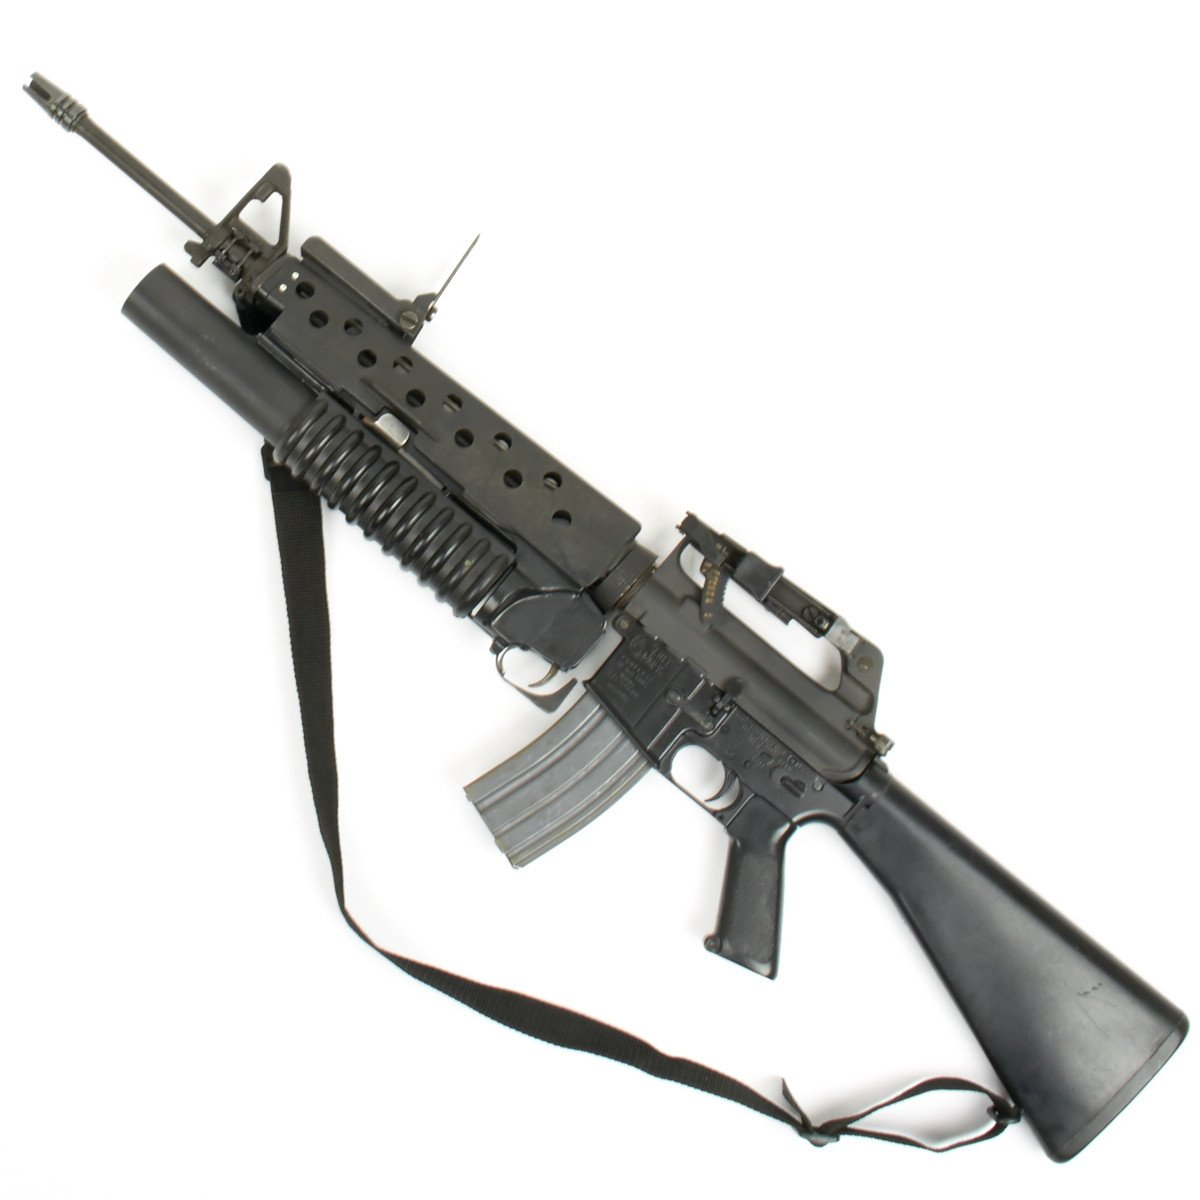 original u s vietnam war colt m16a1 display gun with m203 40mm